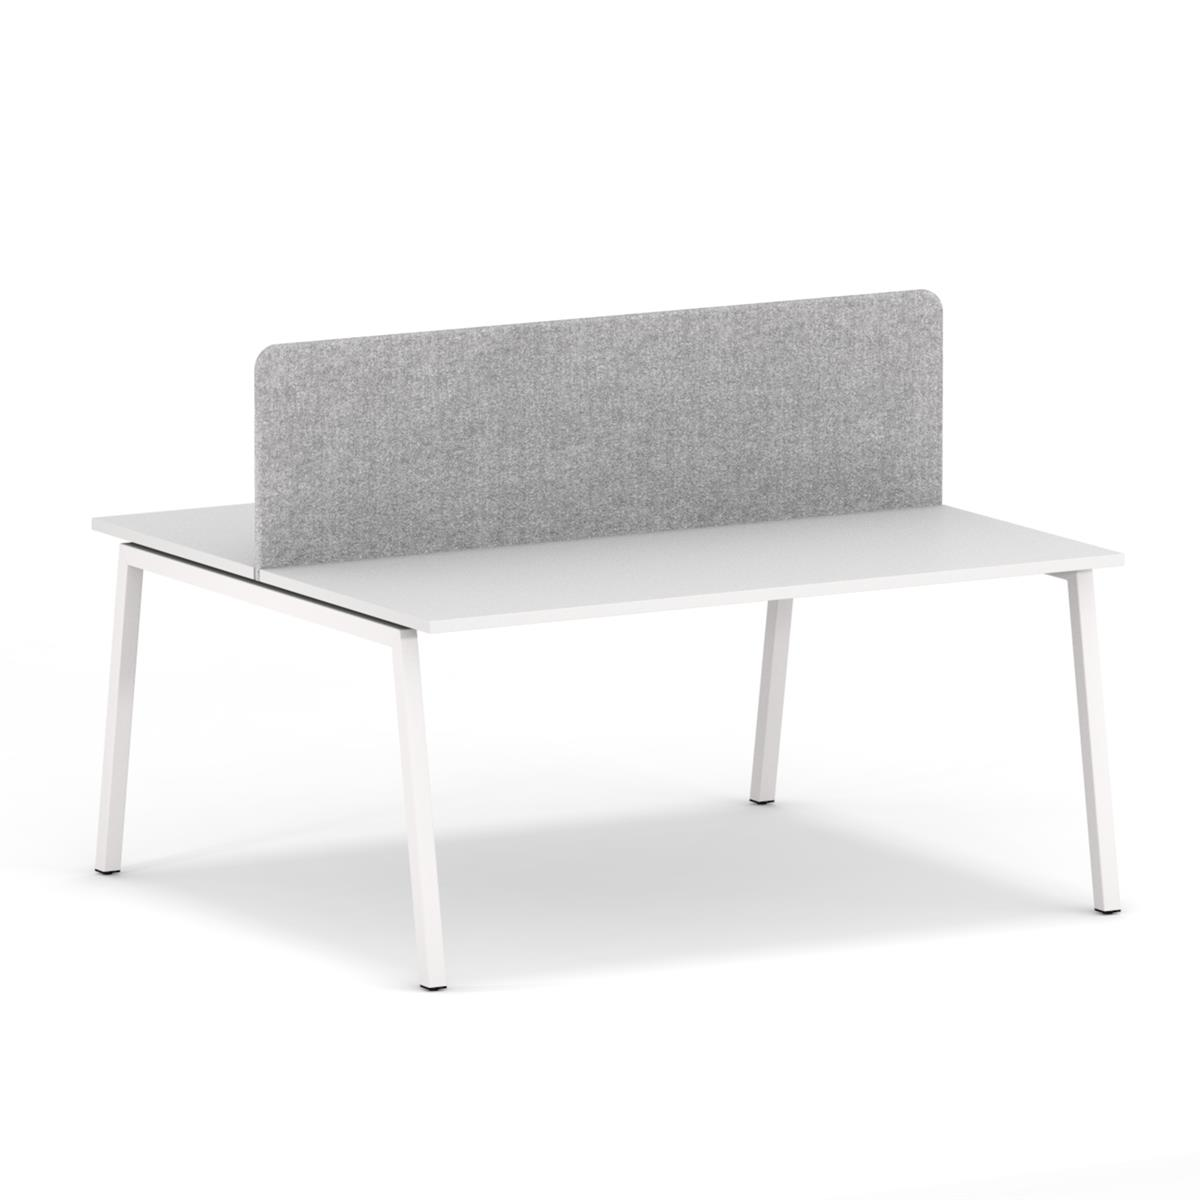 No Desk Screen for Bench 160 x H45 - tekstil Camira Synergy